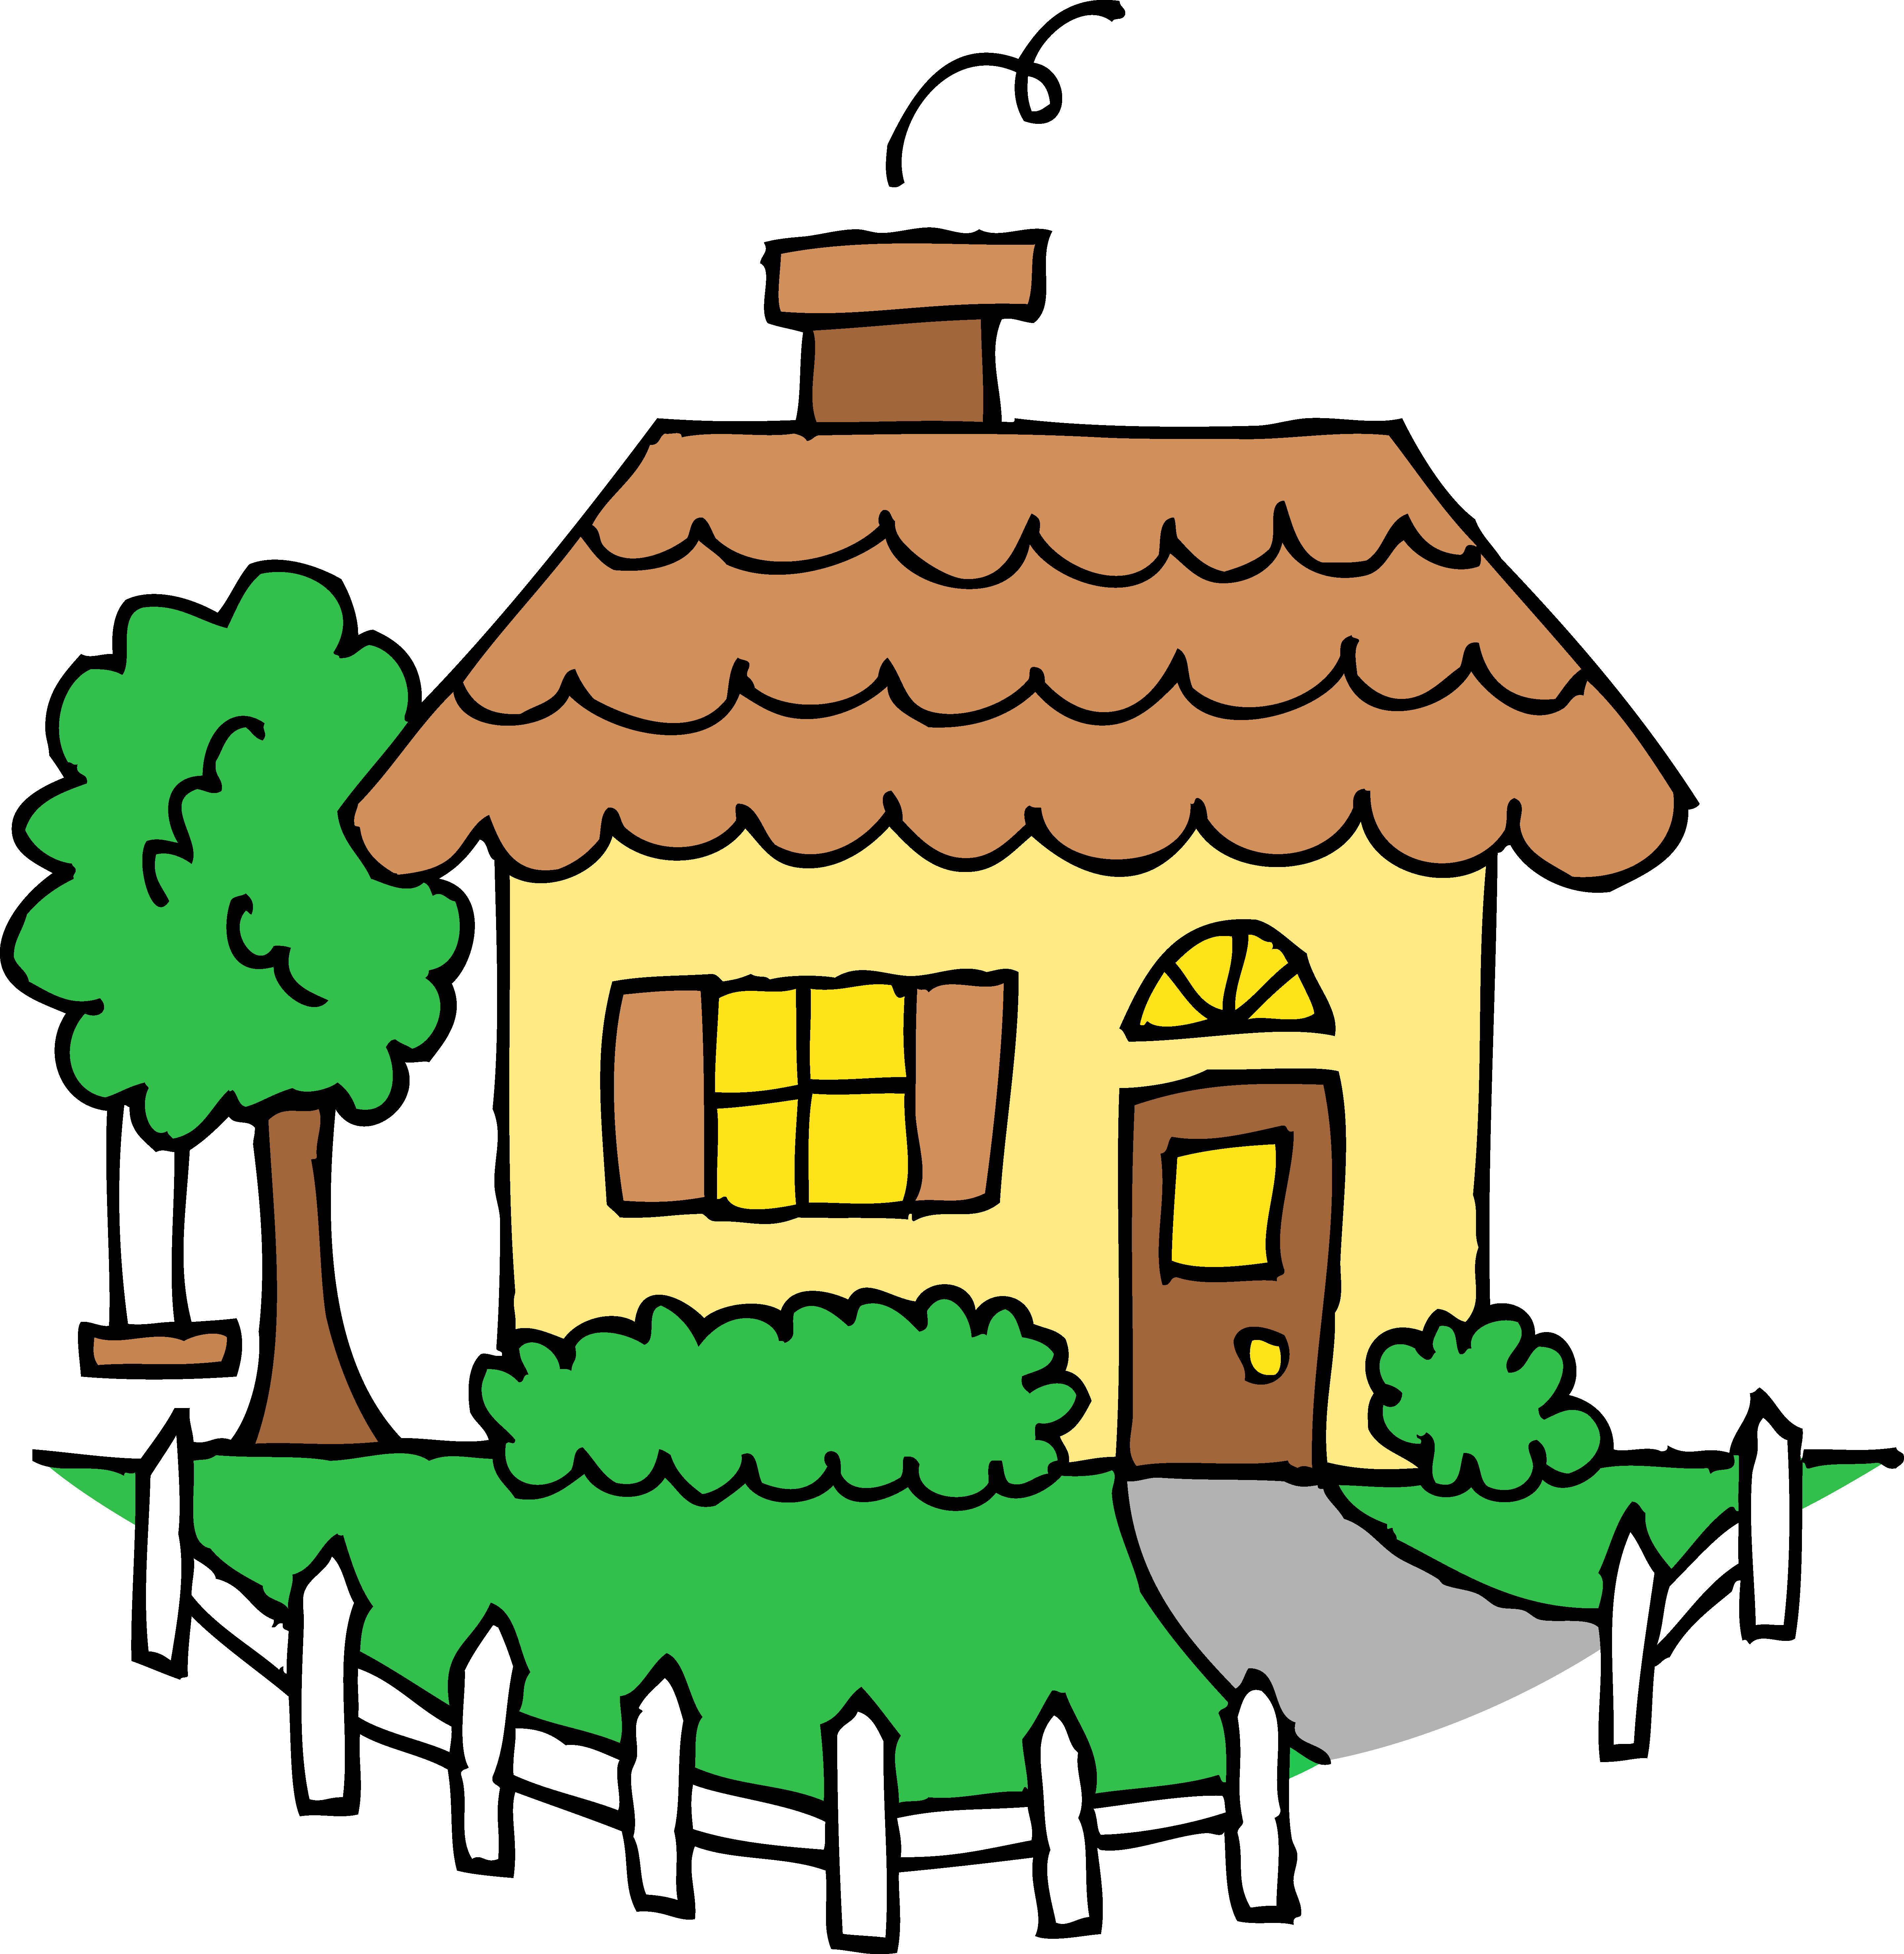 School house clipart free clipart panda free clipart for House pictures for kids